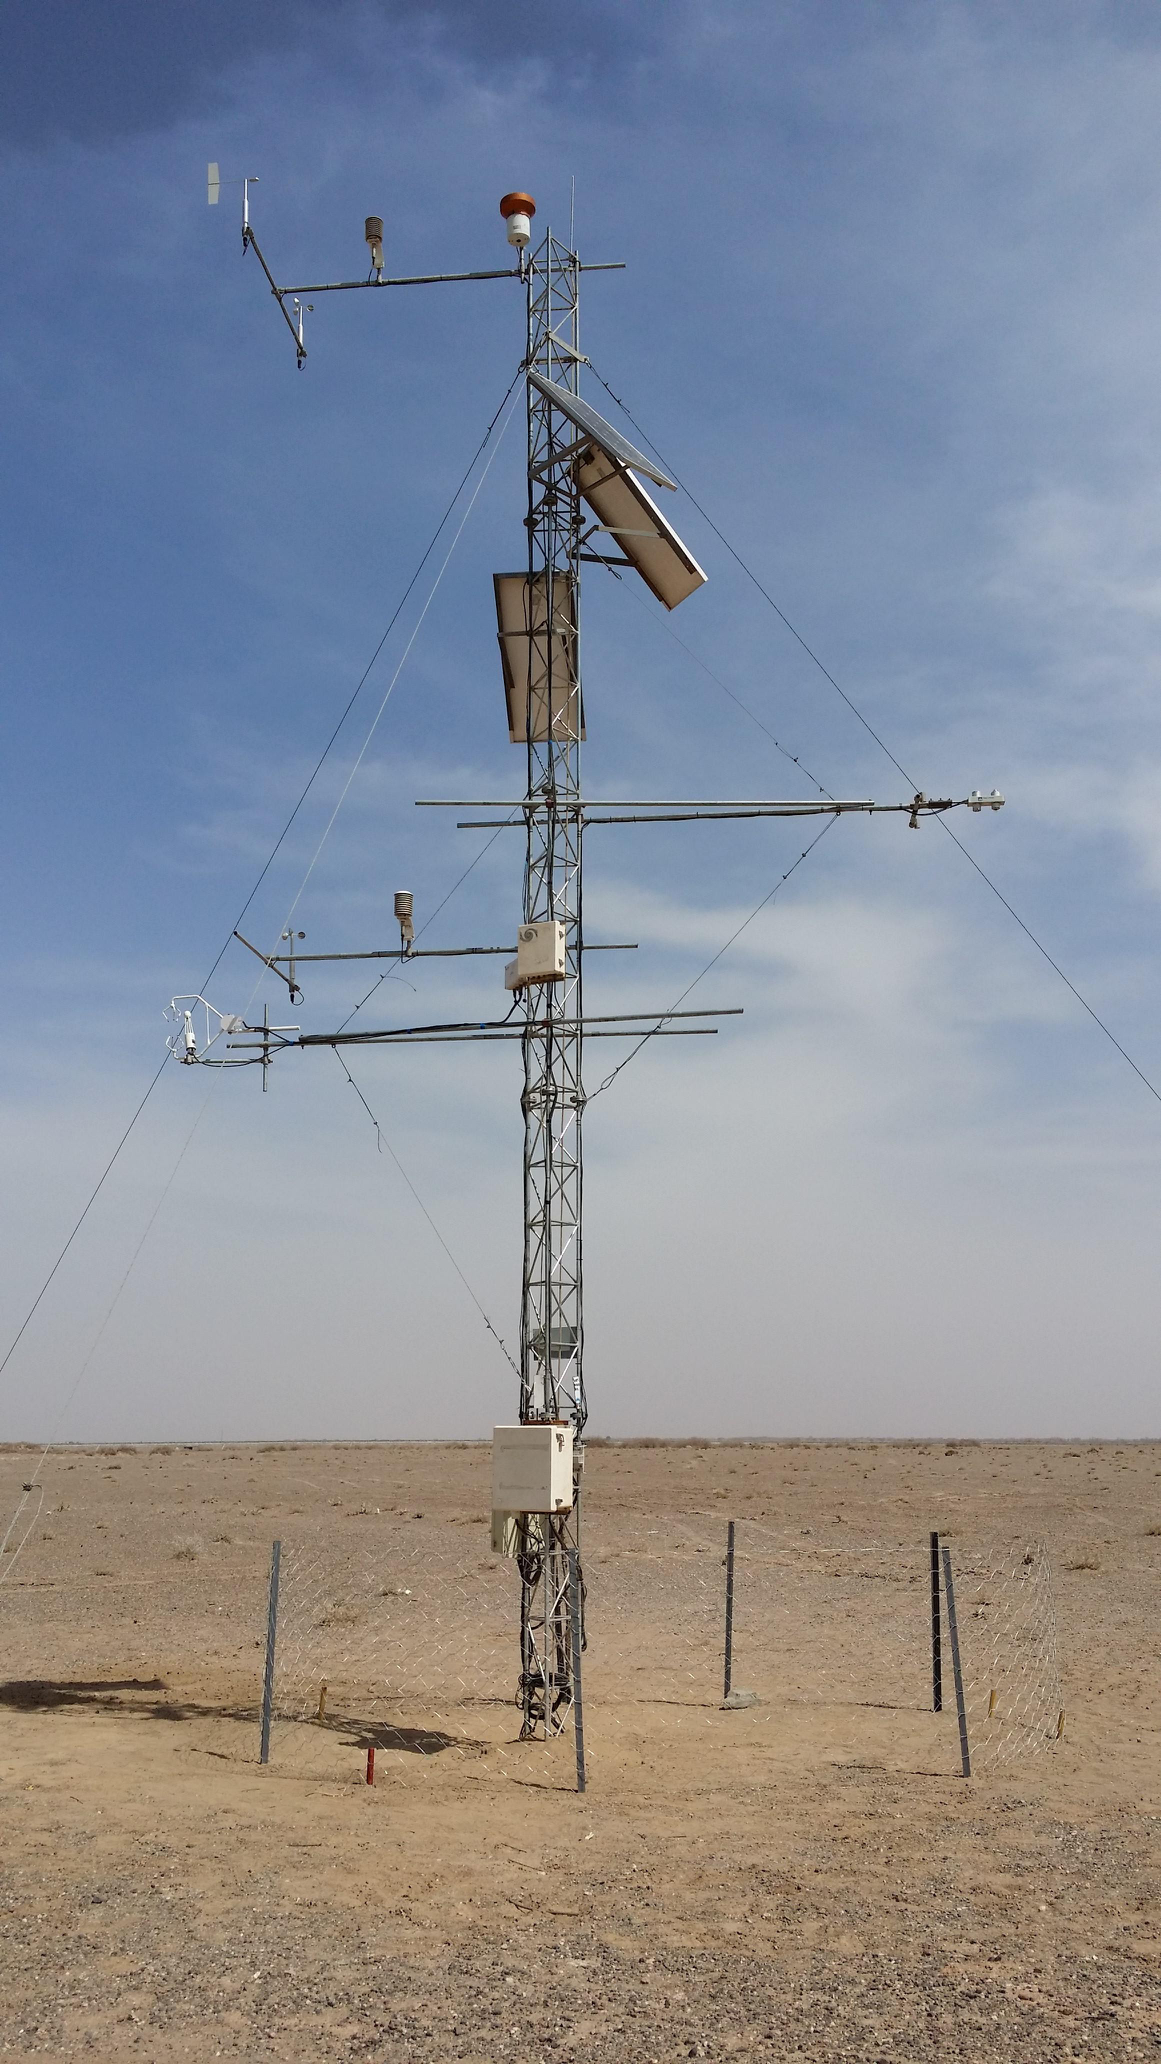 Qilian Mountains integrated observatory network: Dataset of Heihe integrated observatory network (automatic weather station of desert station, 2018)